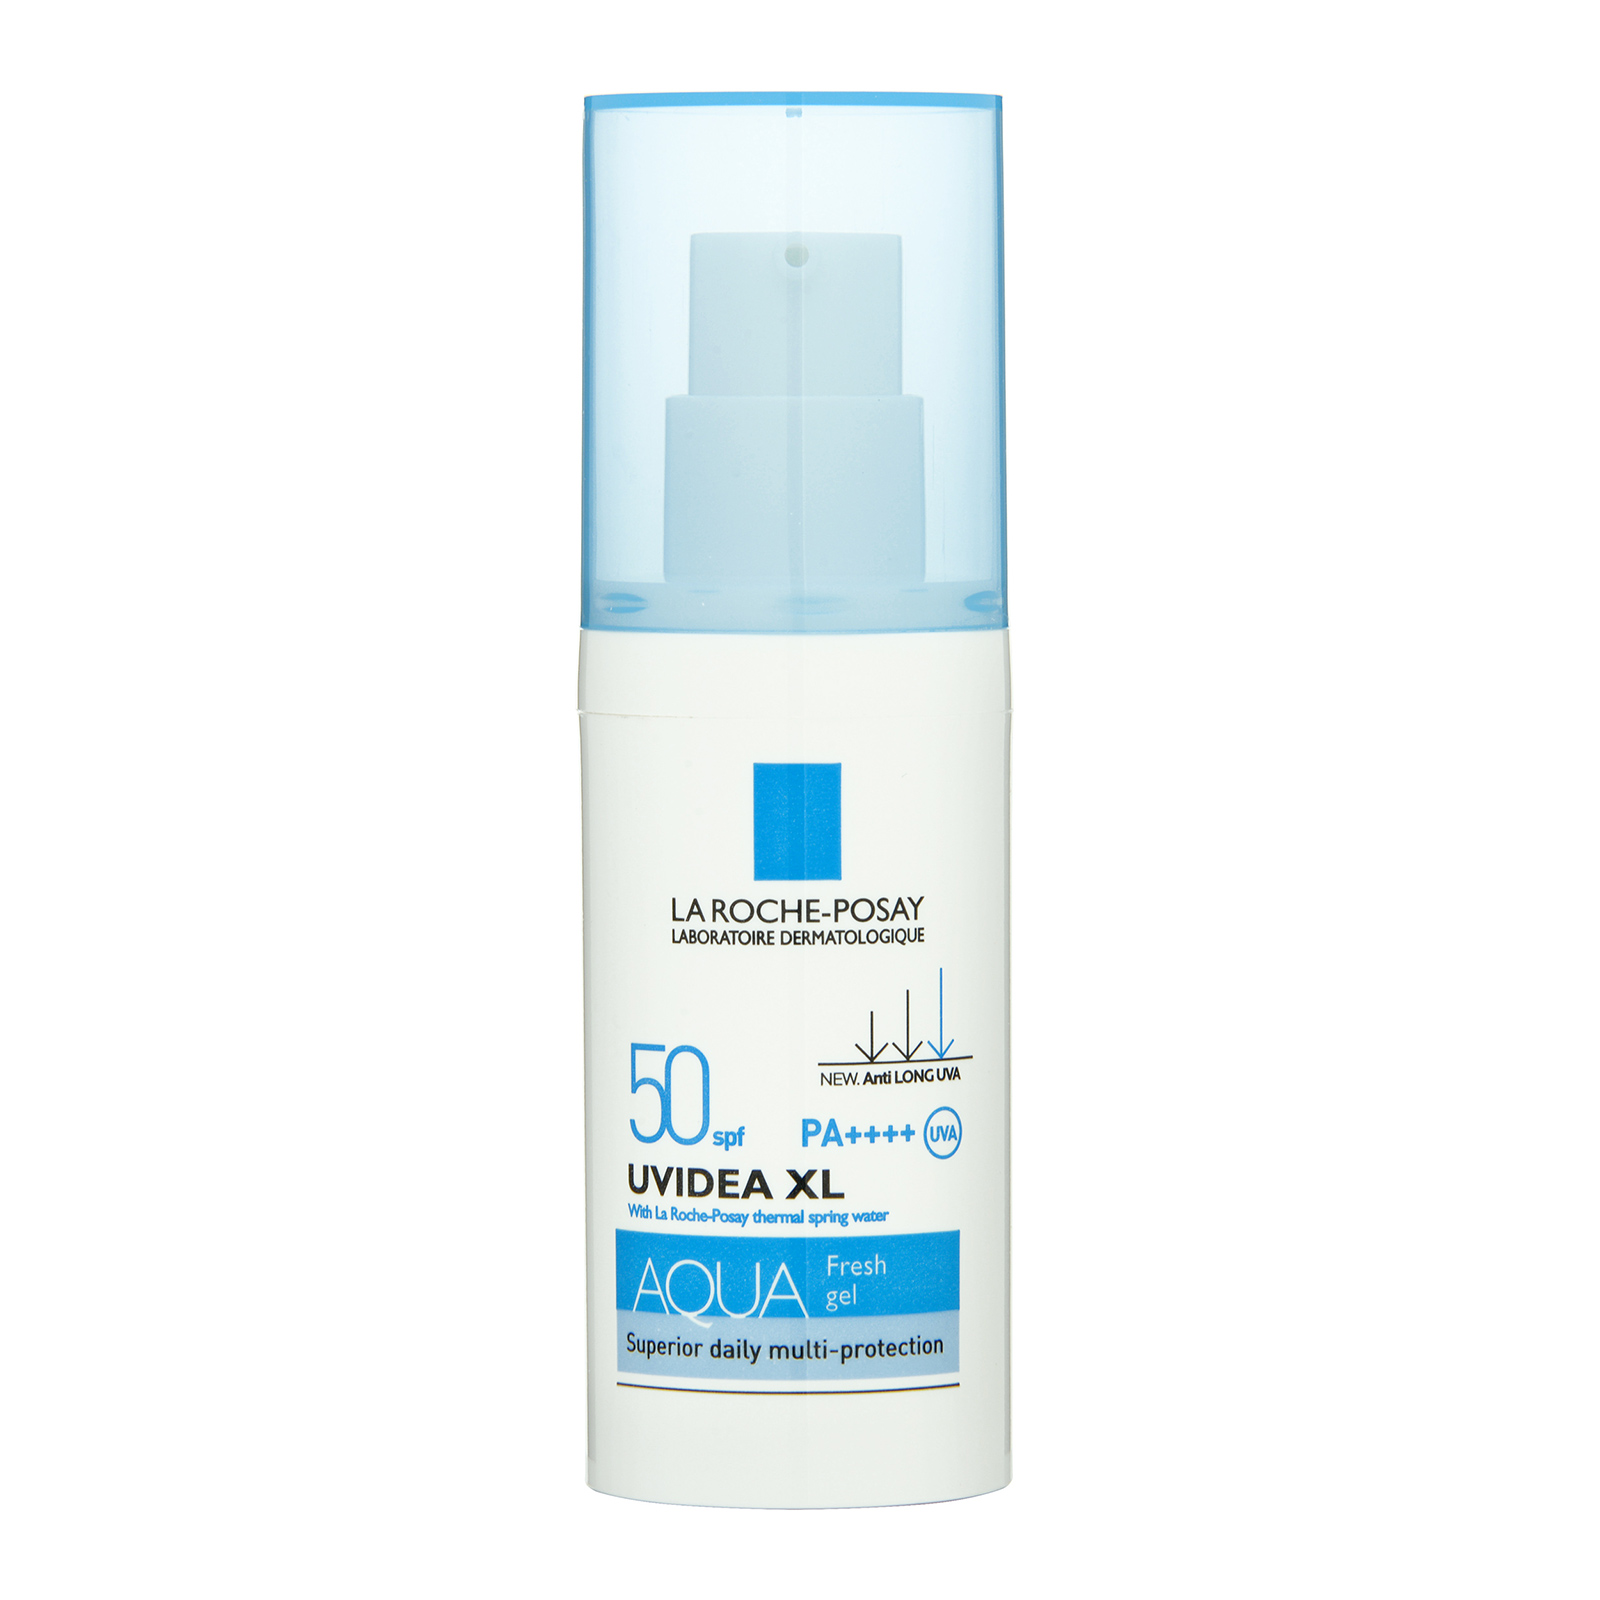 LA ROCHE POSAY - UVIDEA XL AQUA Fresh Gel SPF50 PA++++ - Click Image to Close